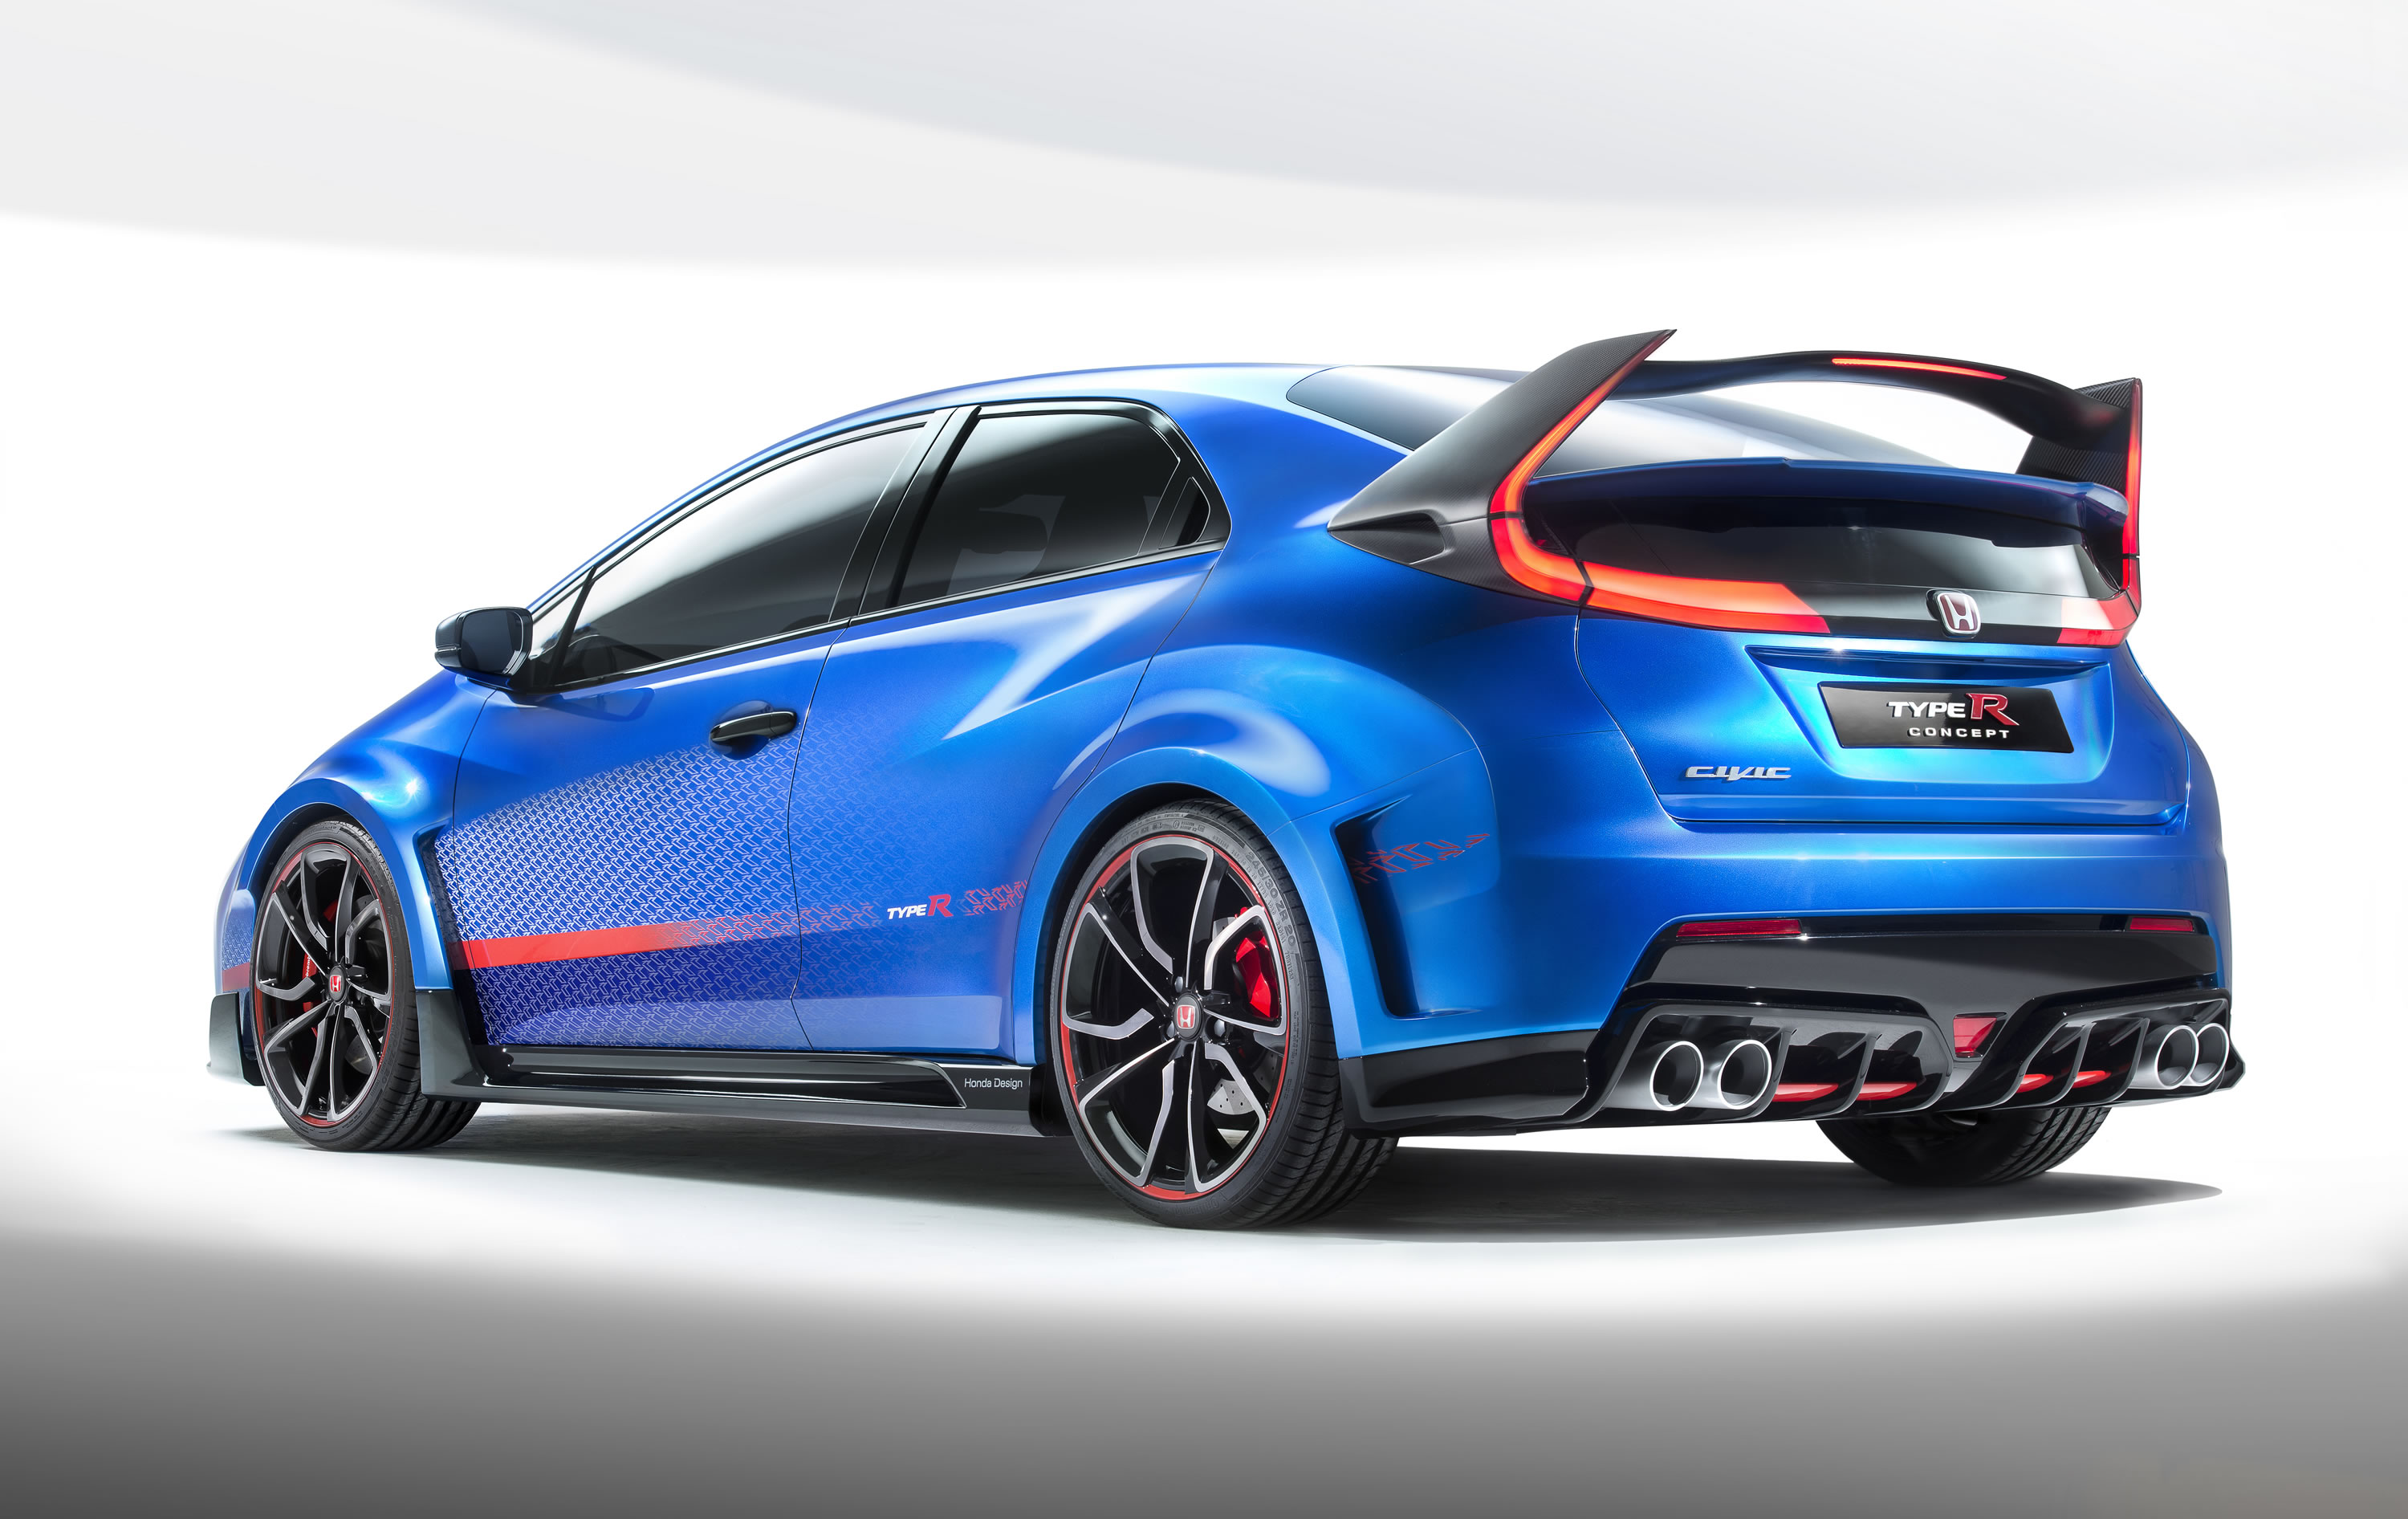 The all-new hot hatch is due to arrive in showrooms across Europe and Japan